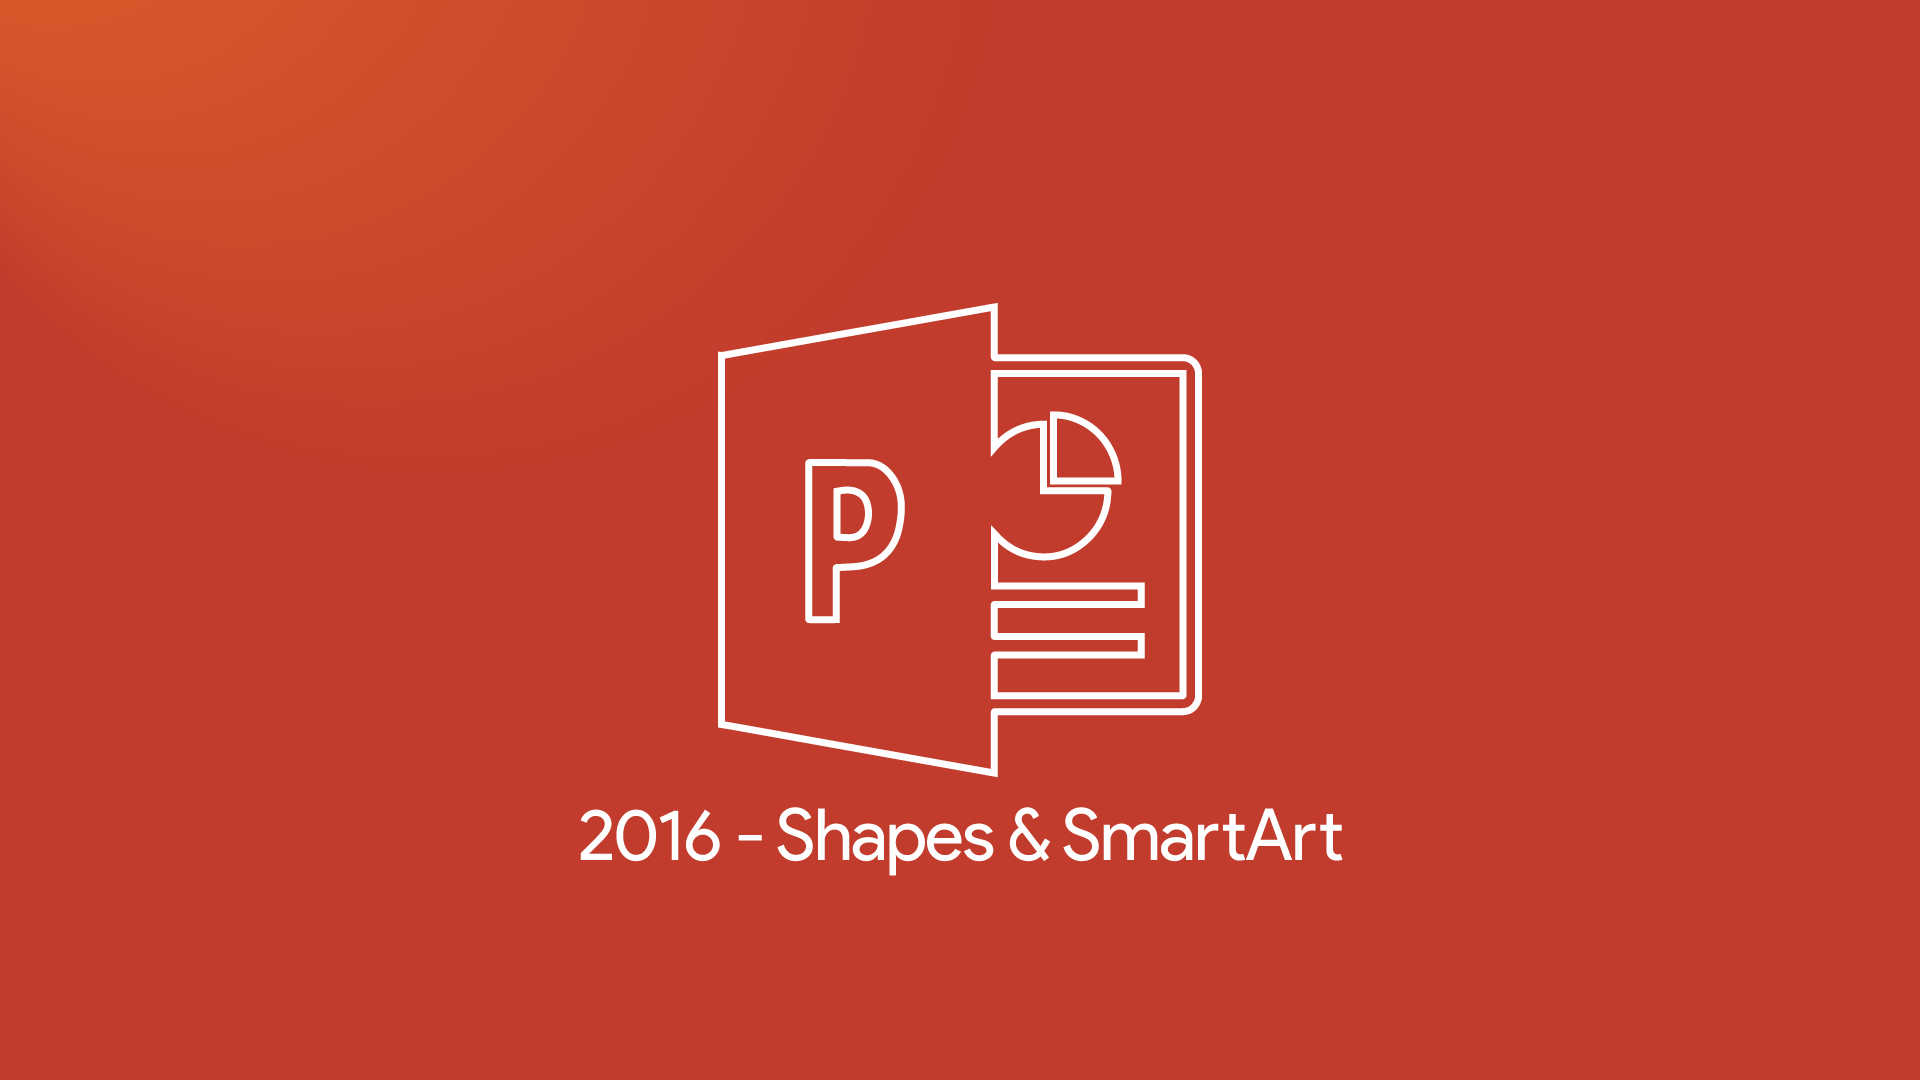 PowerPoint 2016 - Shapes & SmartArt